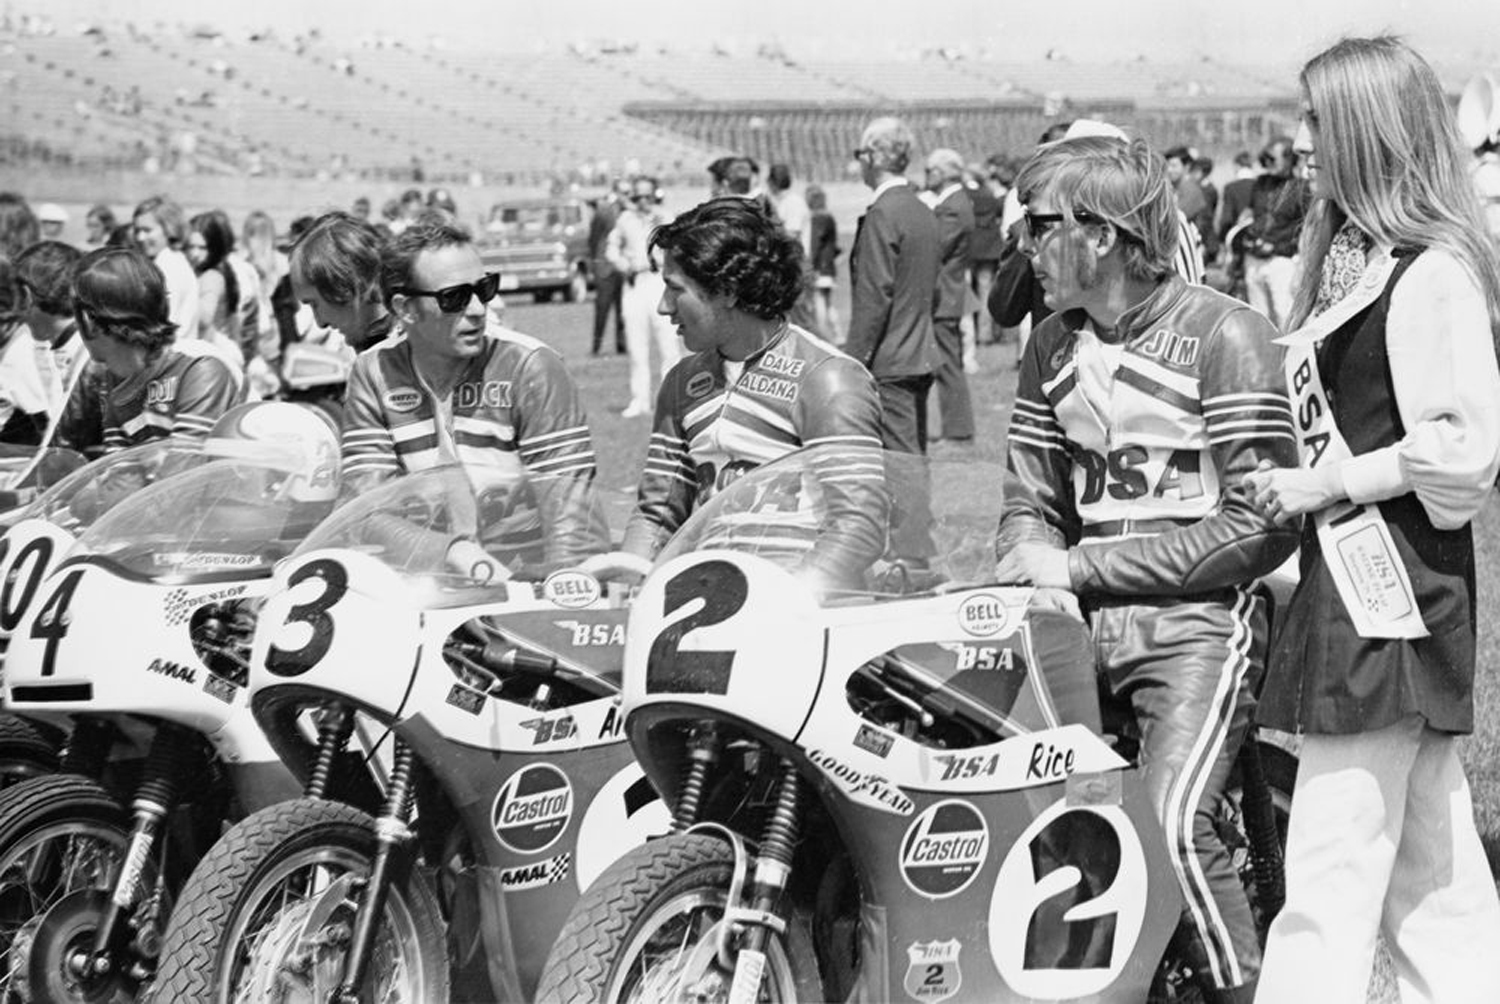 BSA factory team at Daytona (l-r) Don Emde, Mike Hailwood, Dick Mann, David Aldana, Jim Rice